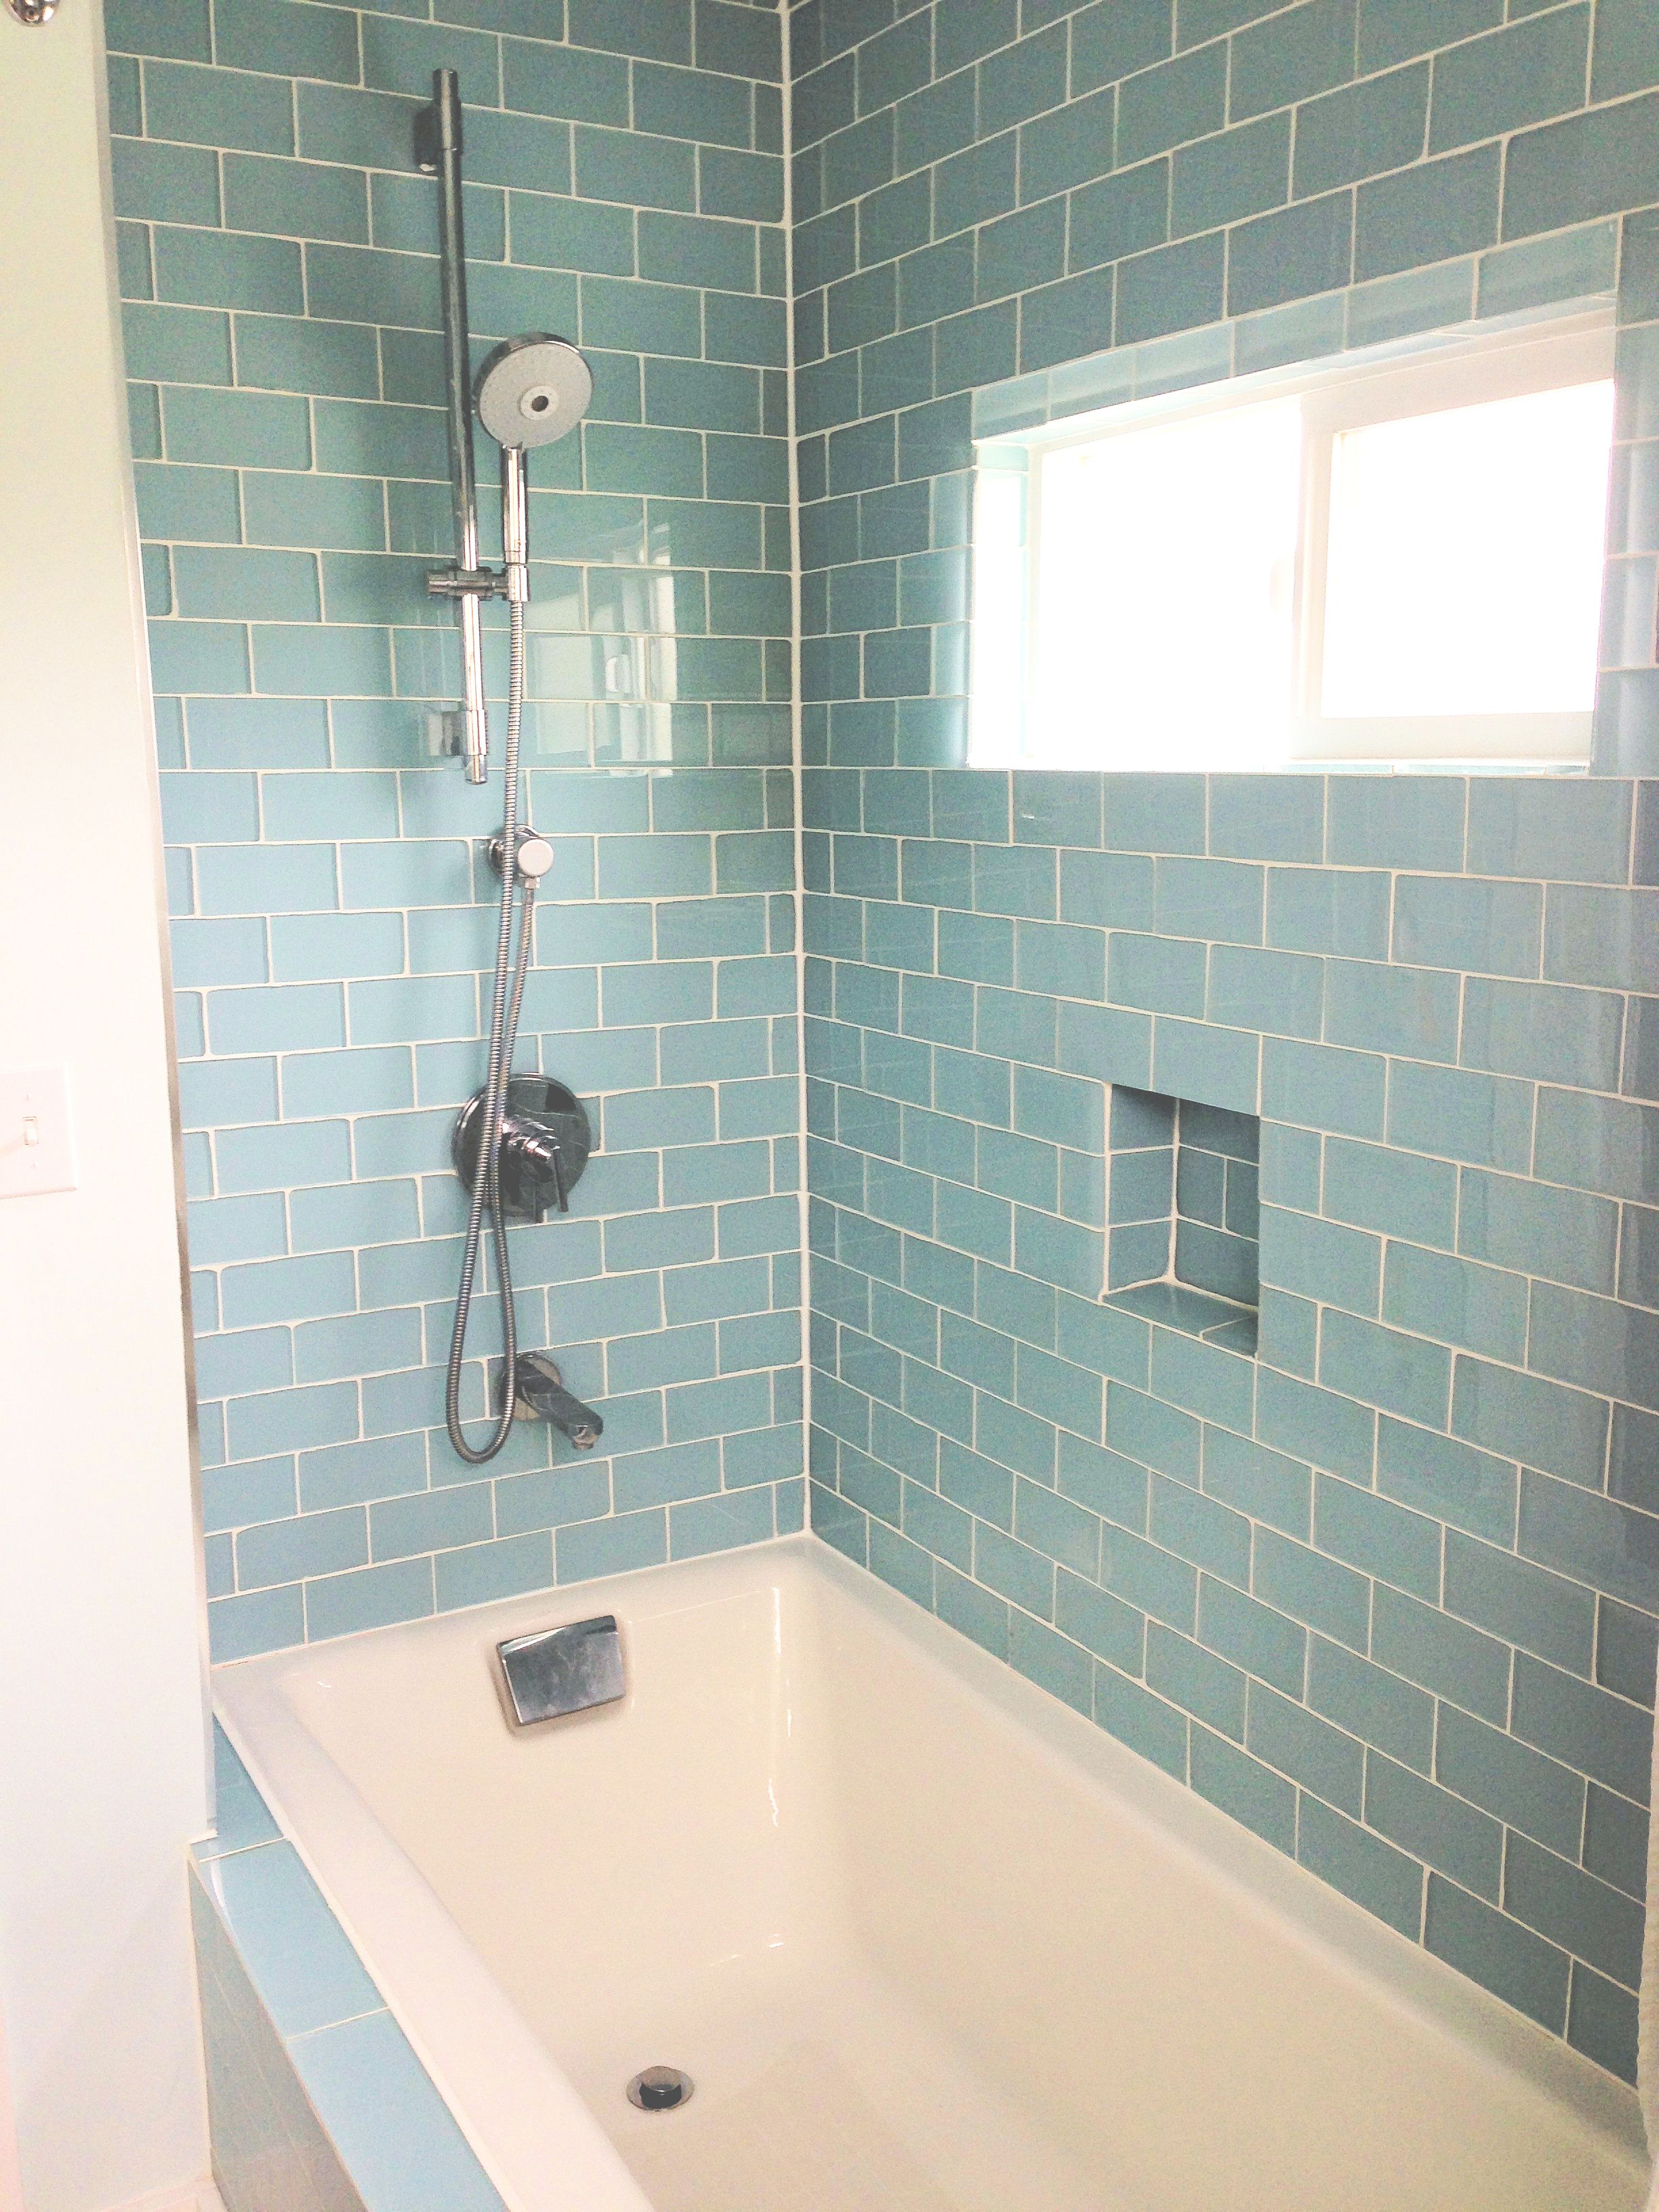 Vapor Glass Subway Tile | Subway tiles, Outlets and Glass shower ...